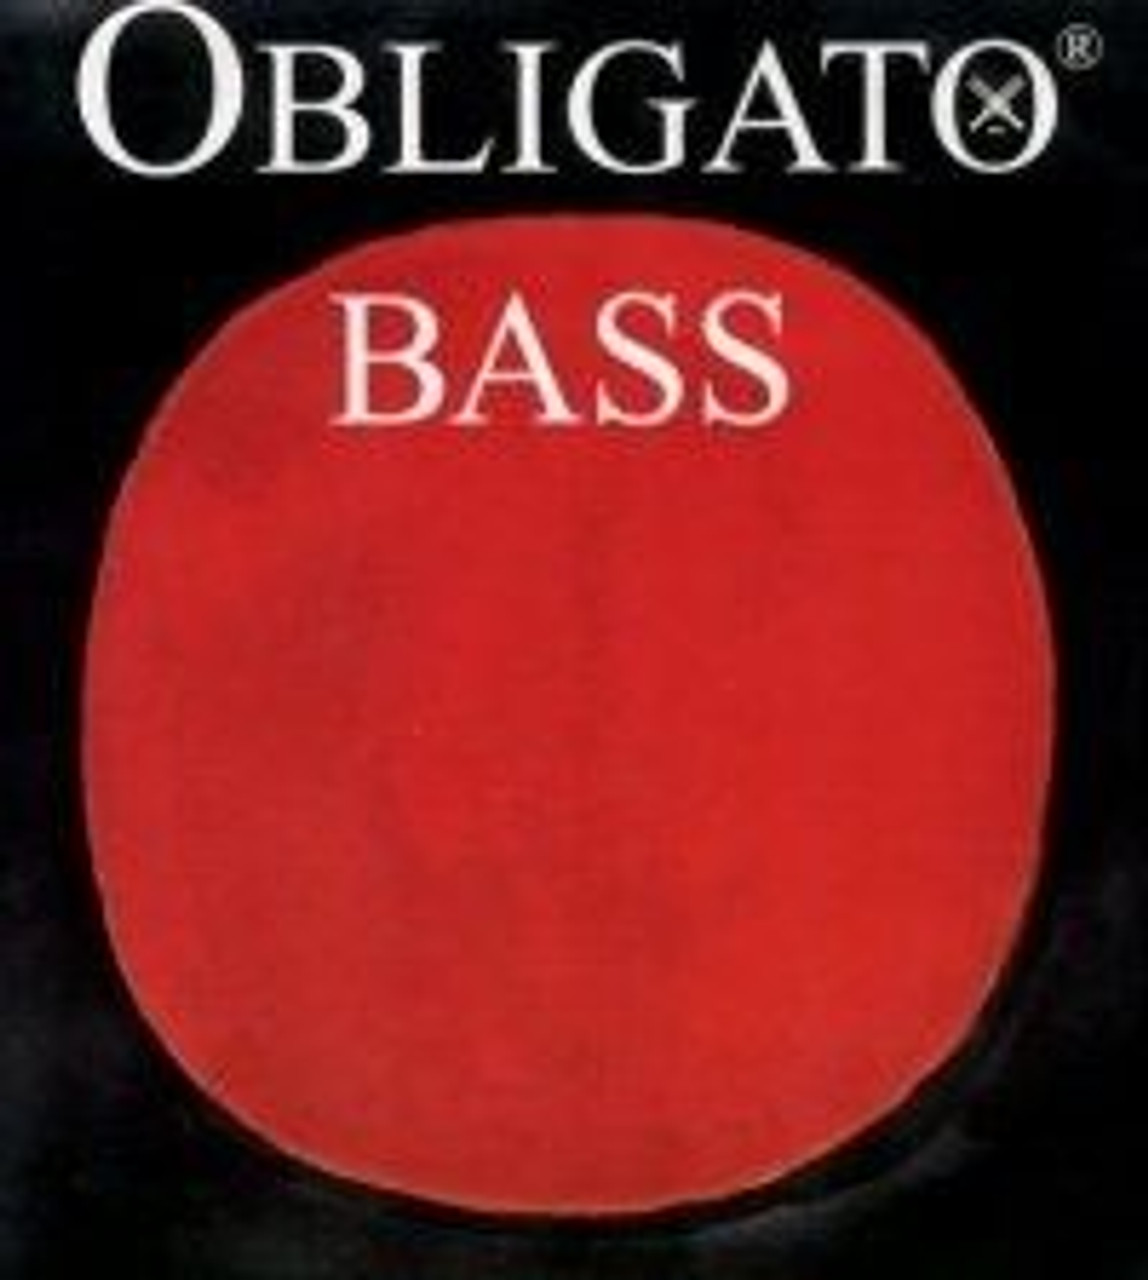 Obligato Upright Bass Strings